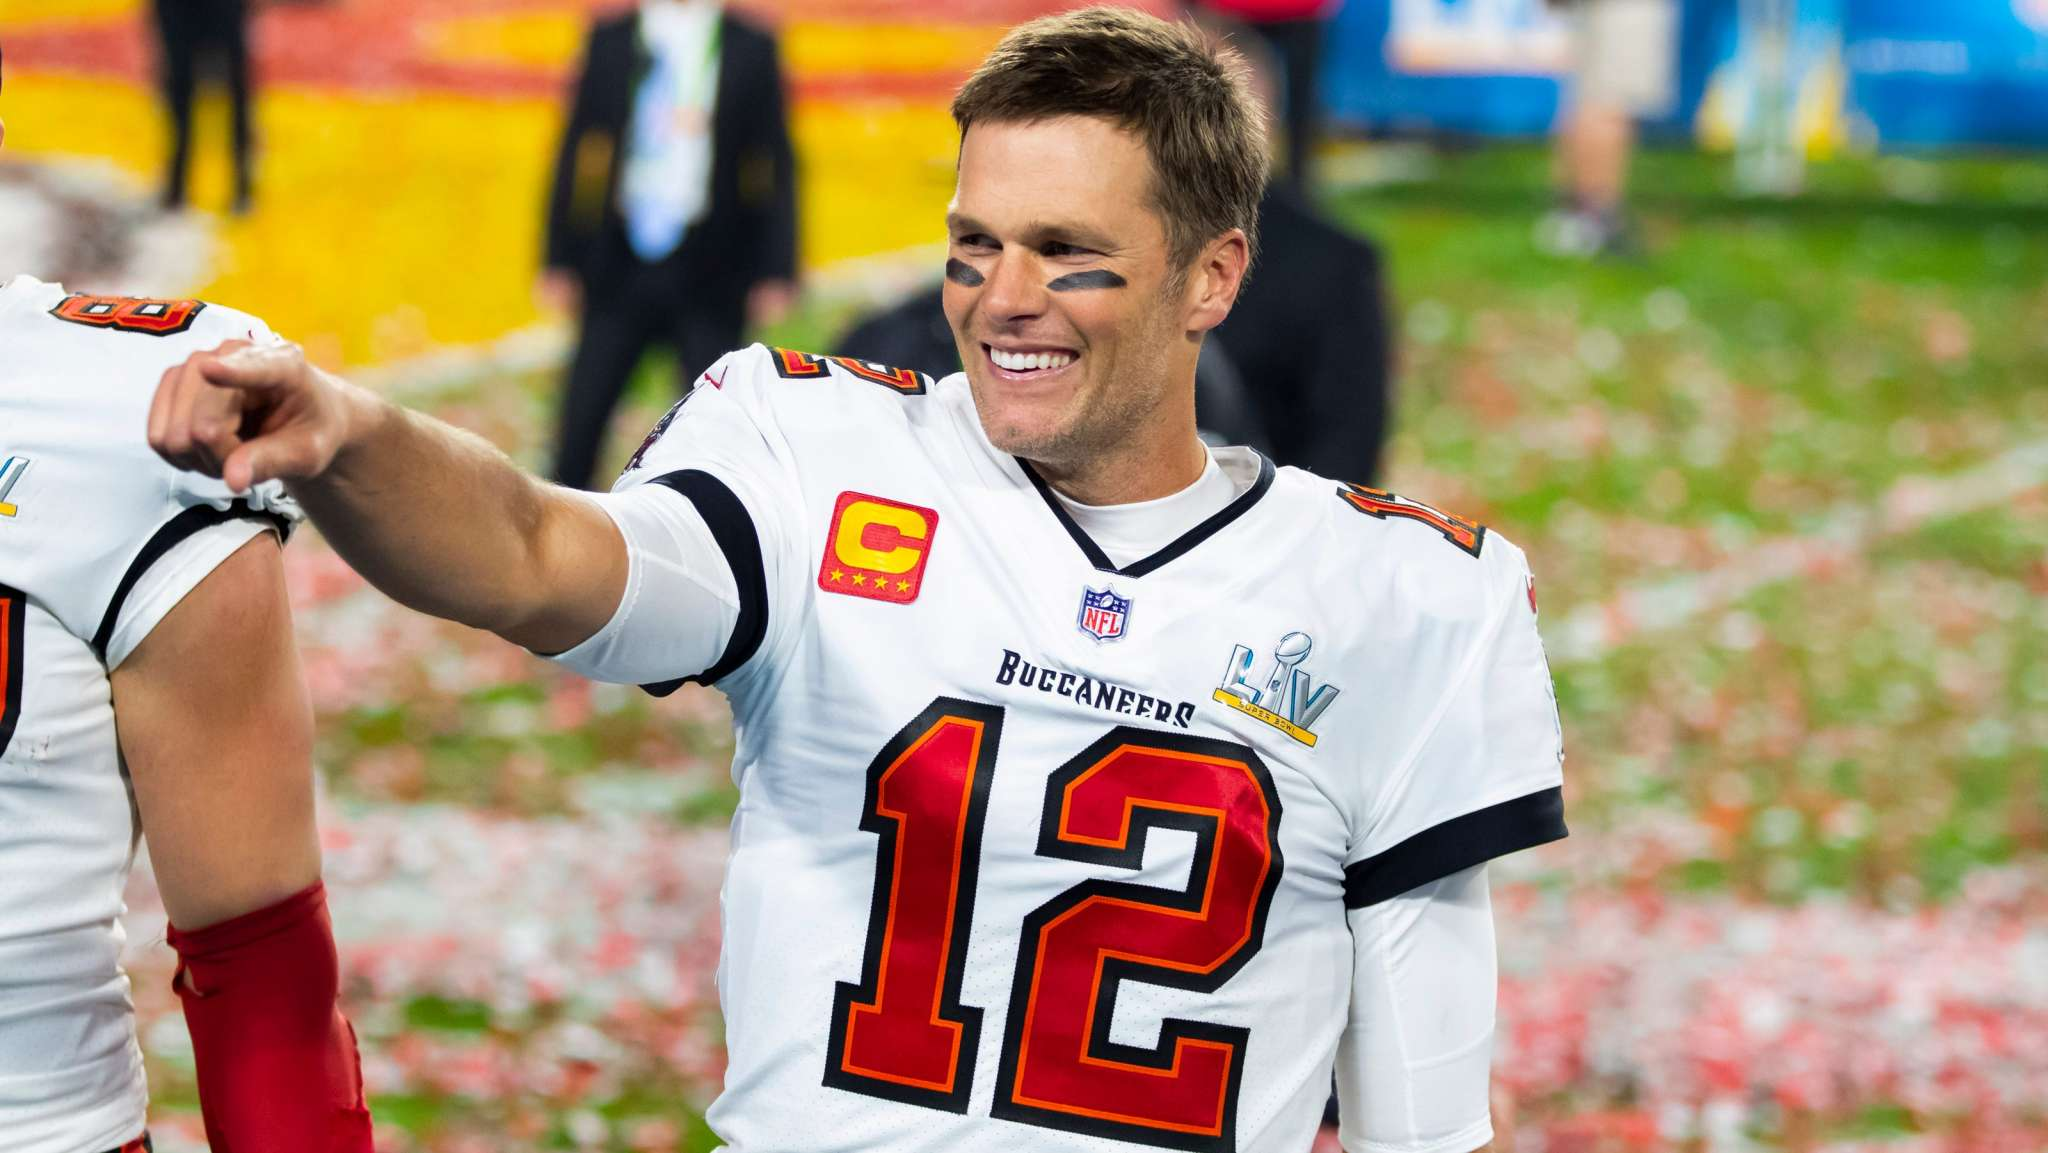 tom-brady-surpasses-drew-brees-and-becomes-the-nfls-leader-in-career-passing-yards